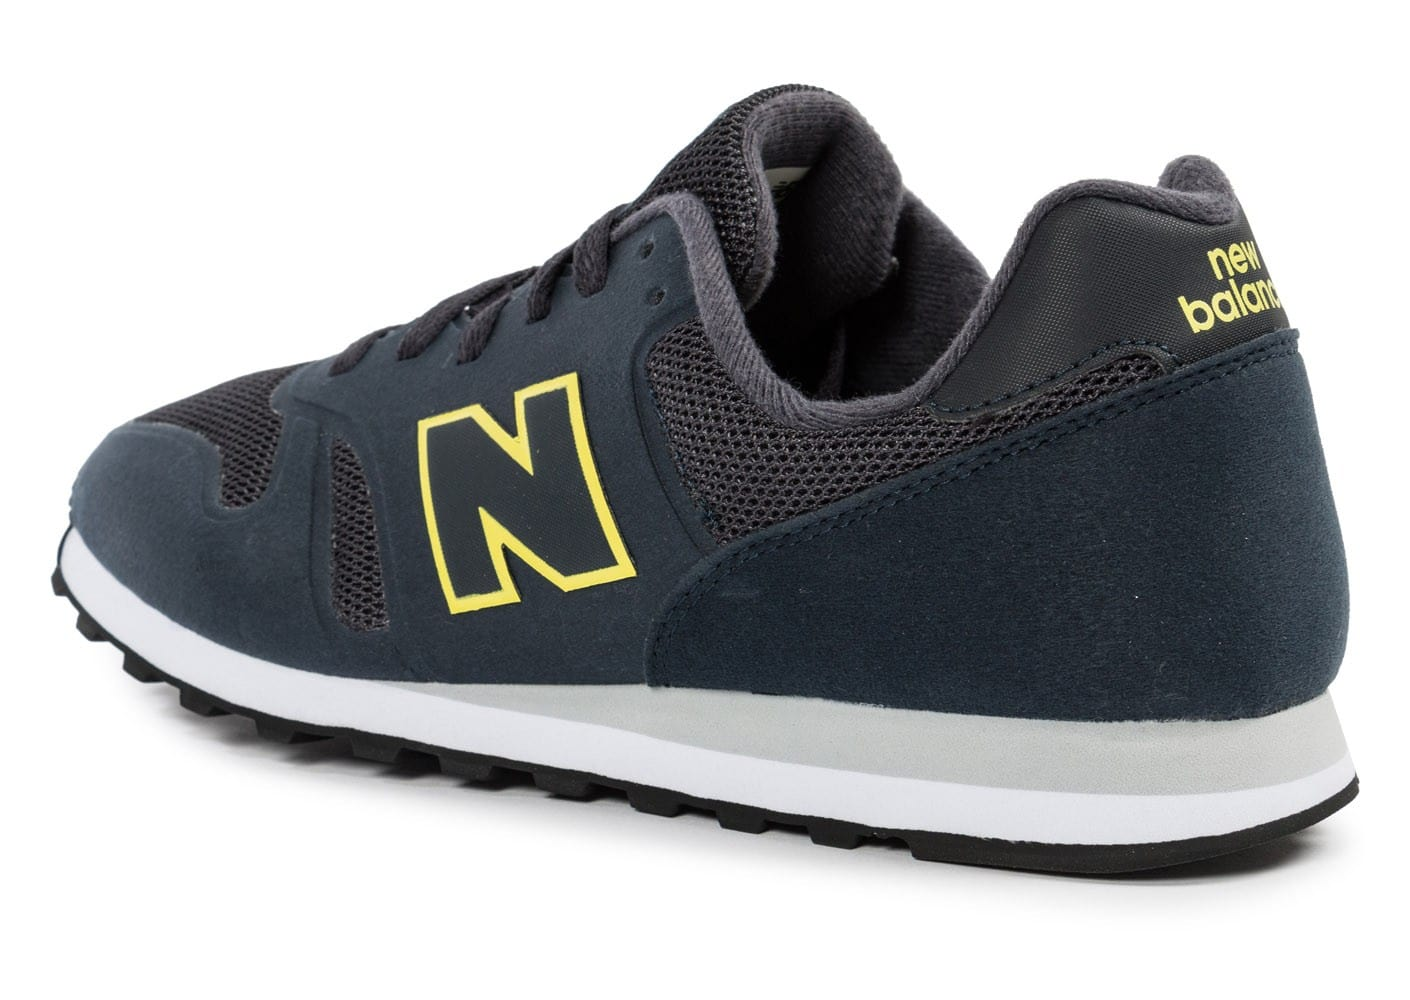 check out a4b4c 62d34 0538-chaussures-new-balance-md373-ny-bleu-marine-vue-arriere 1.jpg